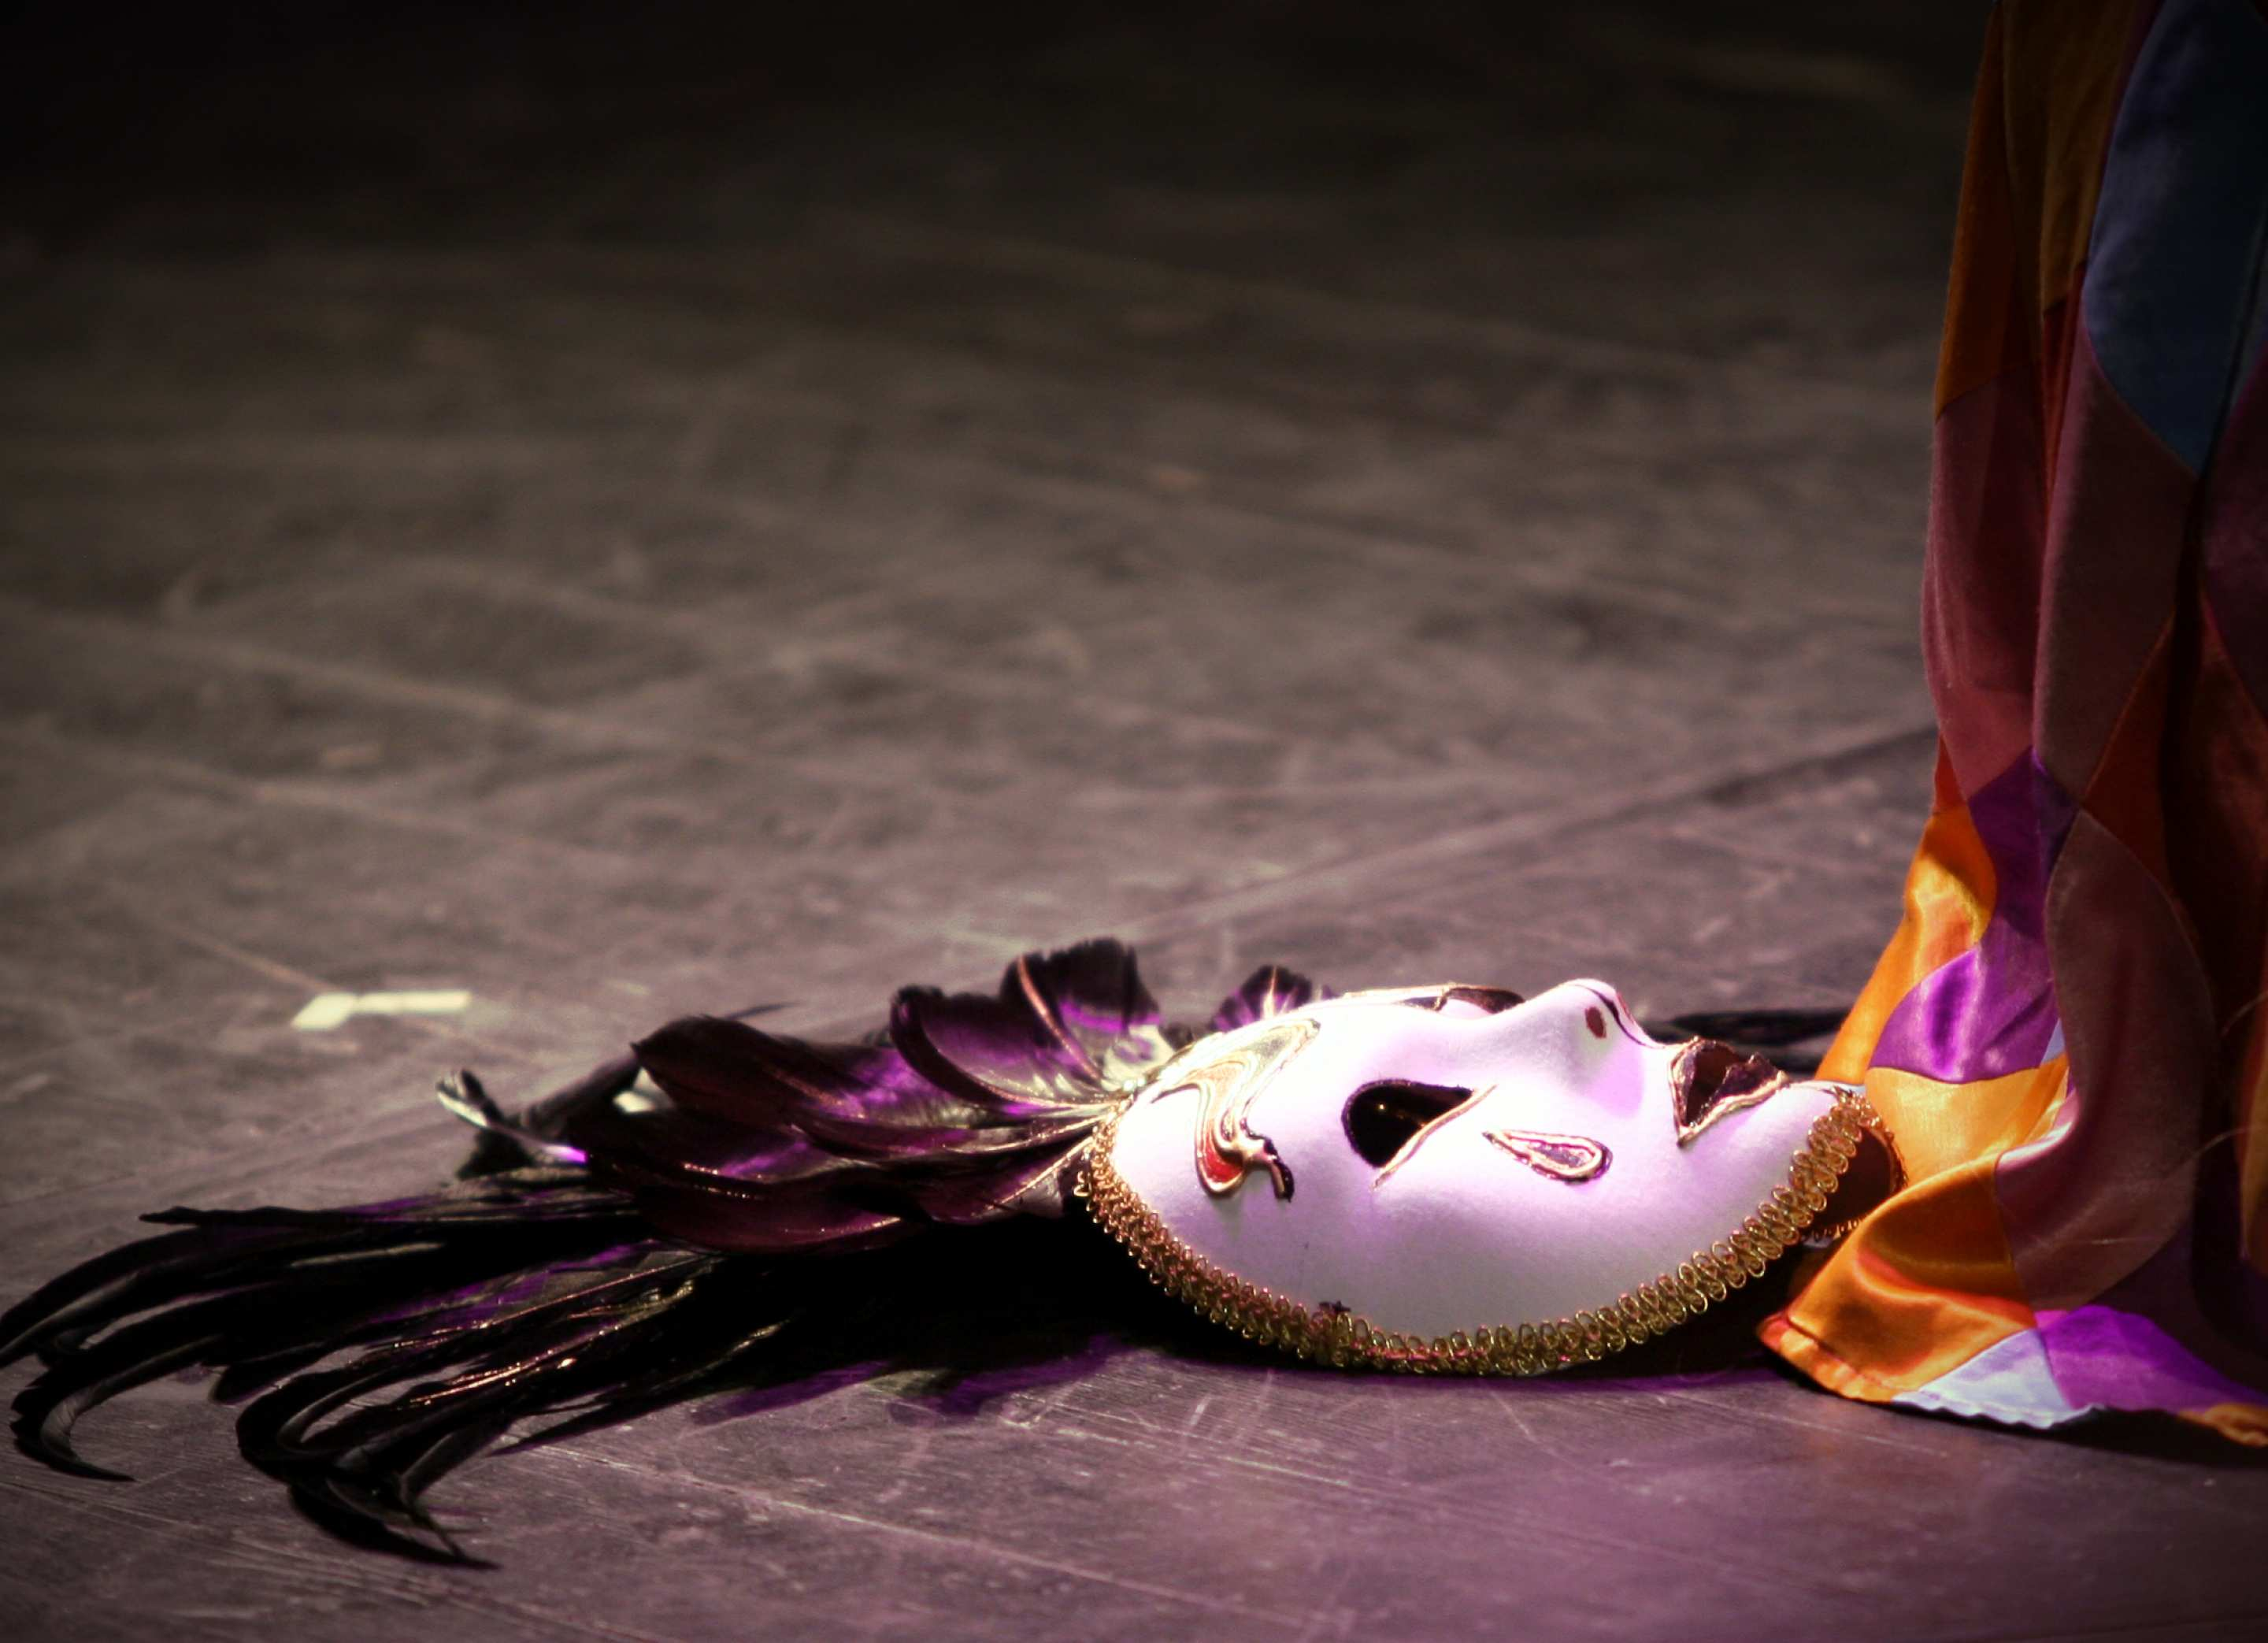 A stage performer's mask lies beside a stage curtain. Image: freeimages.com